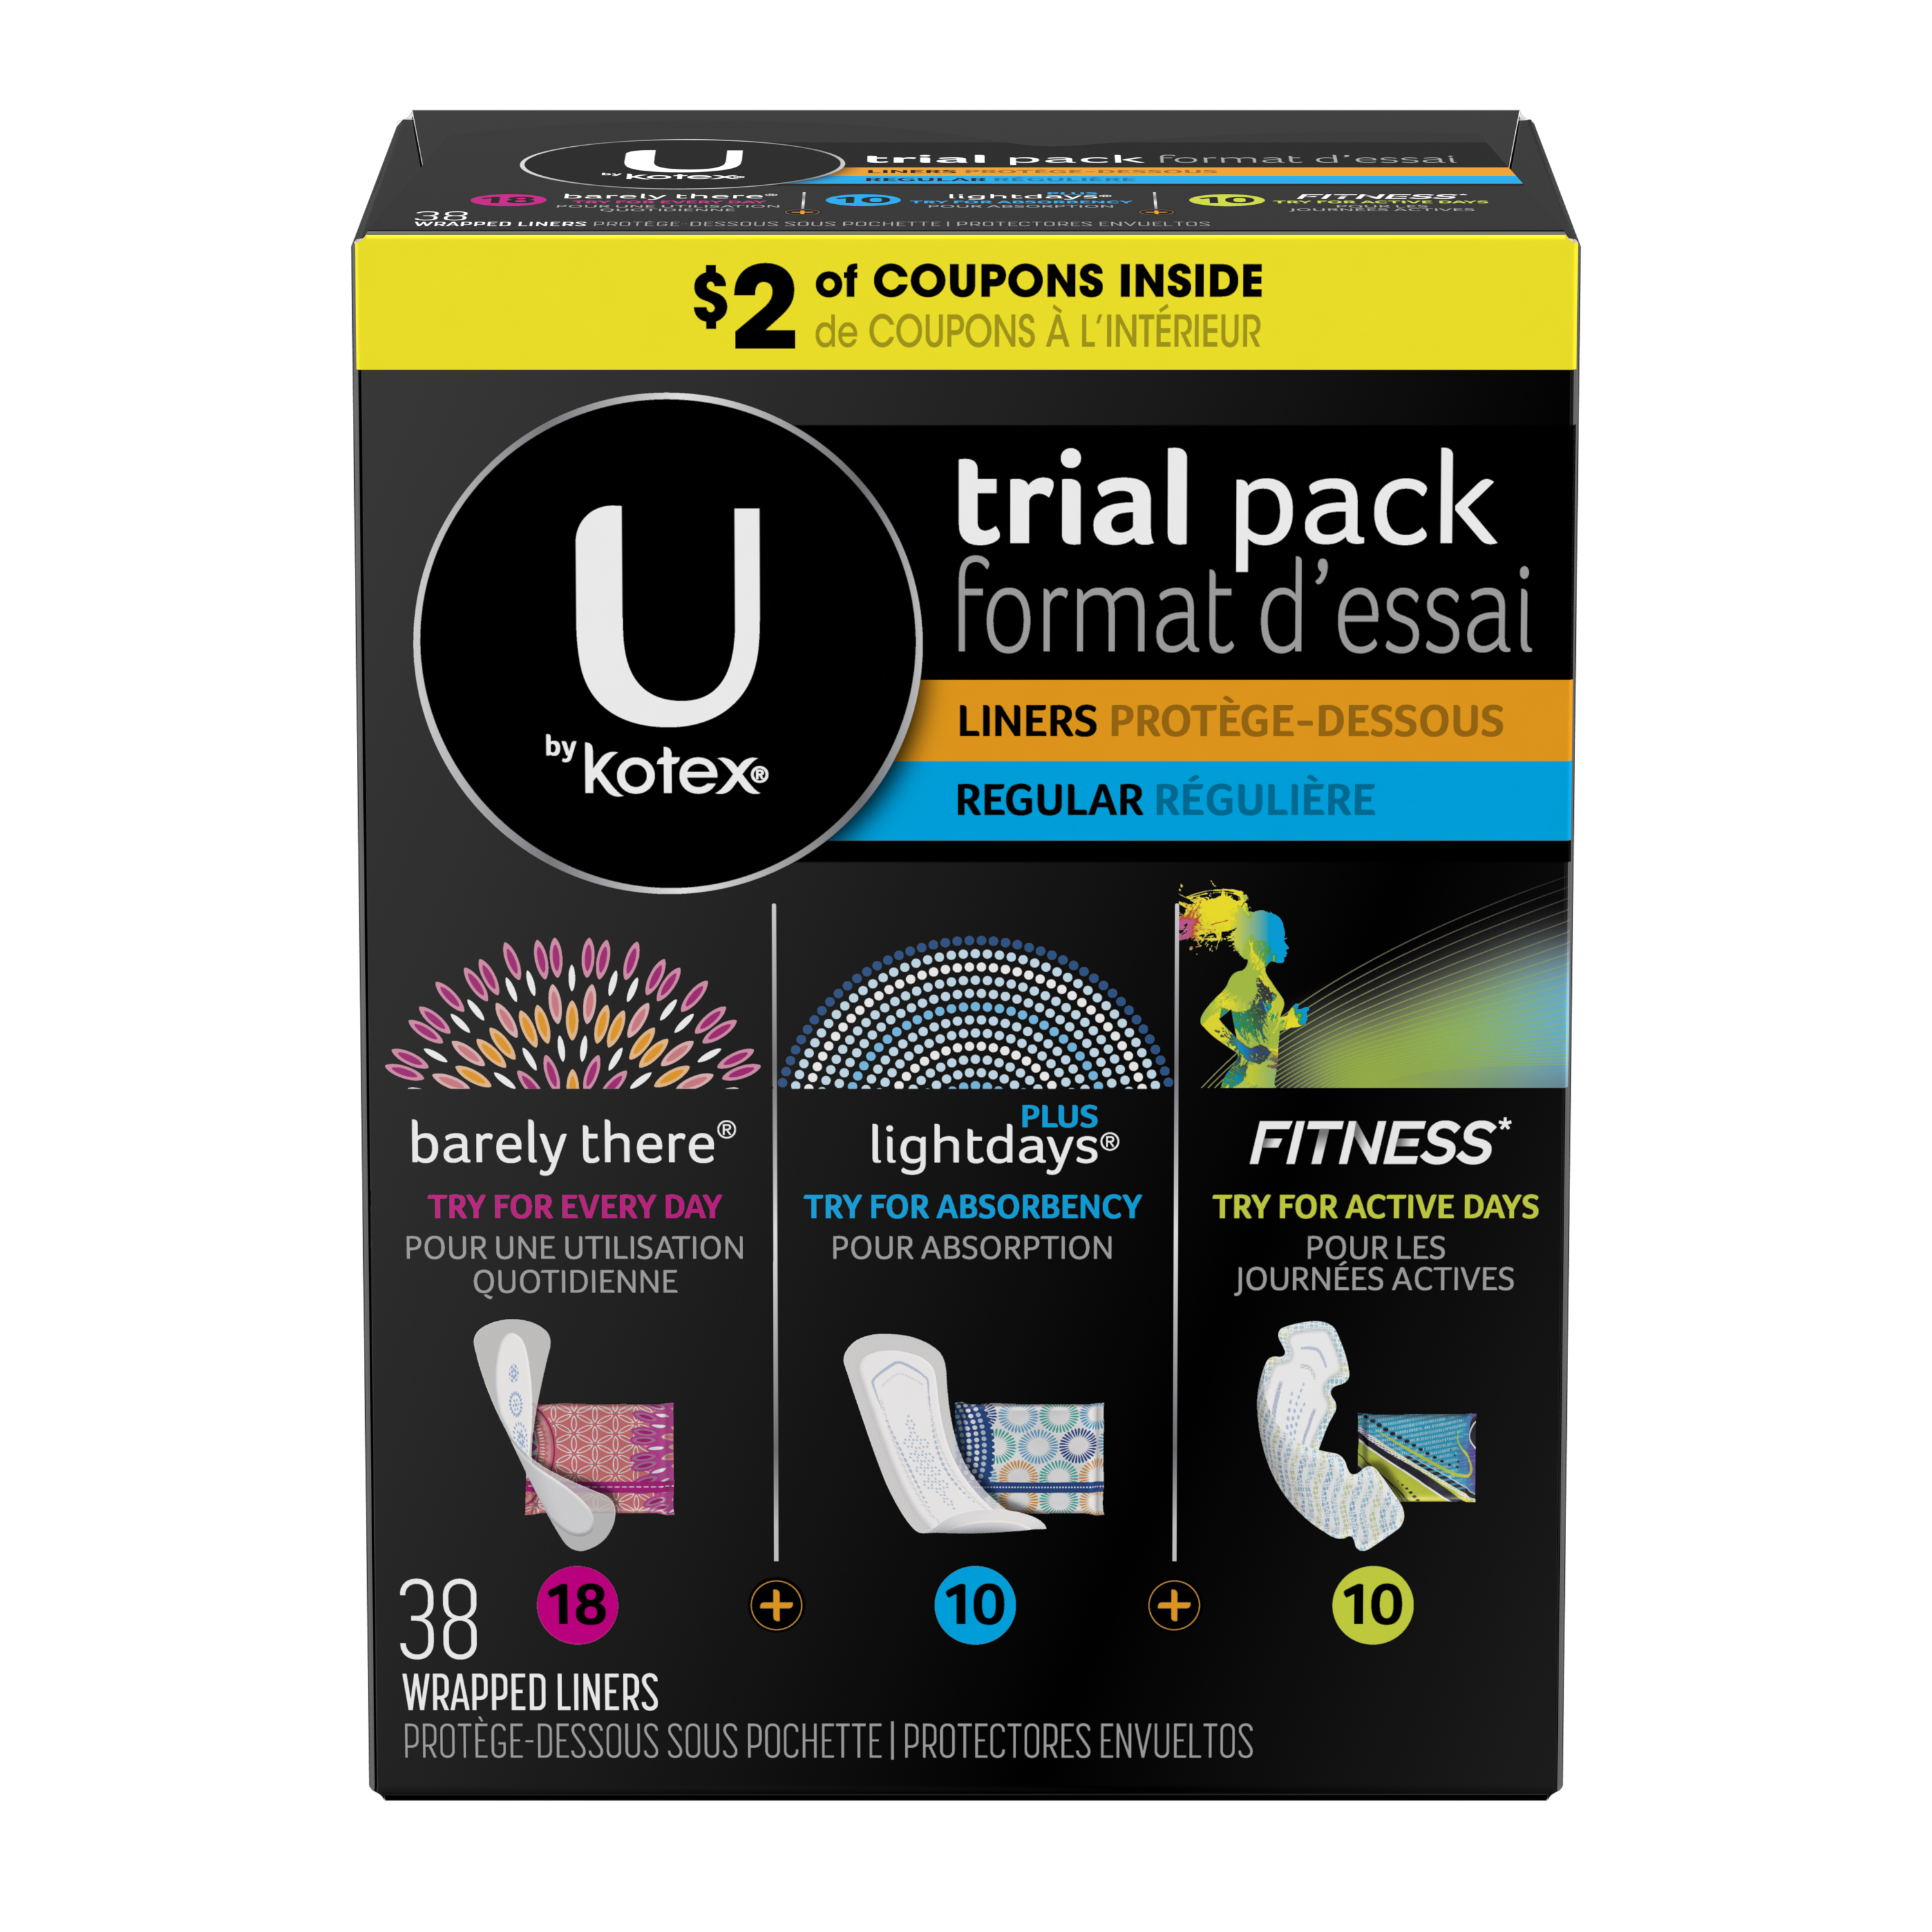 U by Kotex Barely There Panty Liners & Click Tampons Travel Pack, Regular Absorbency